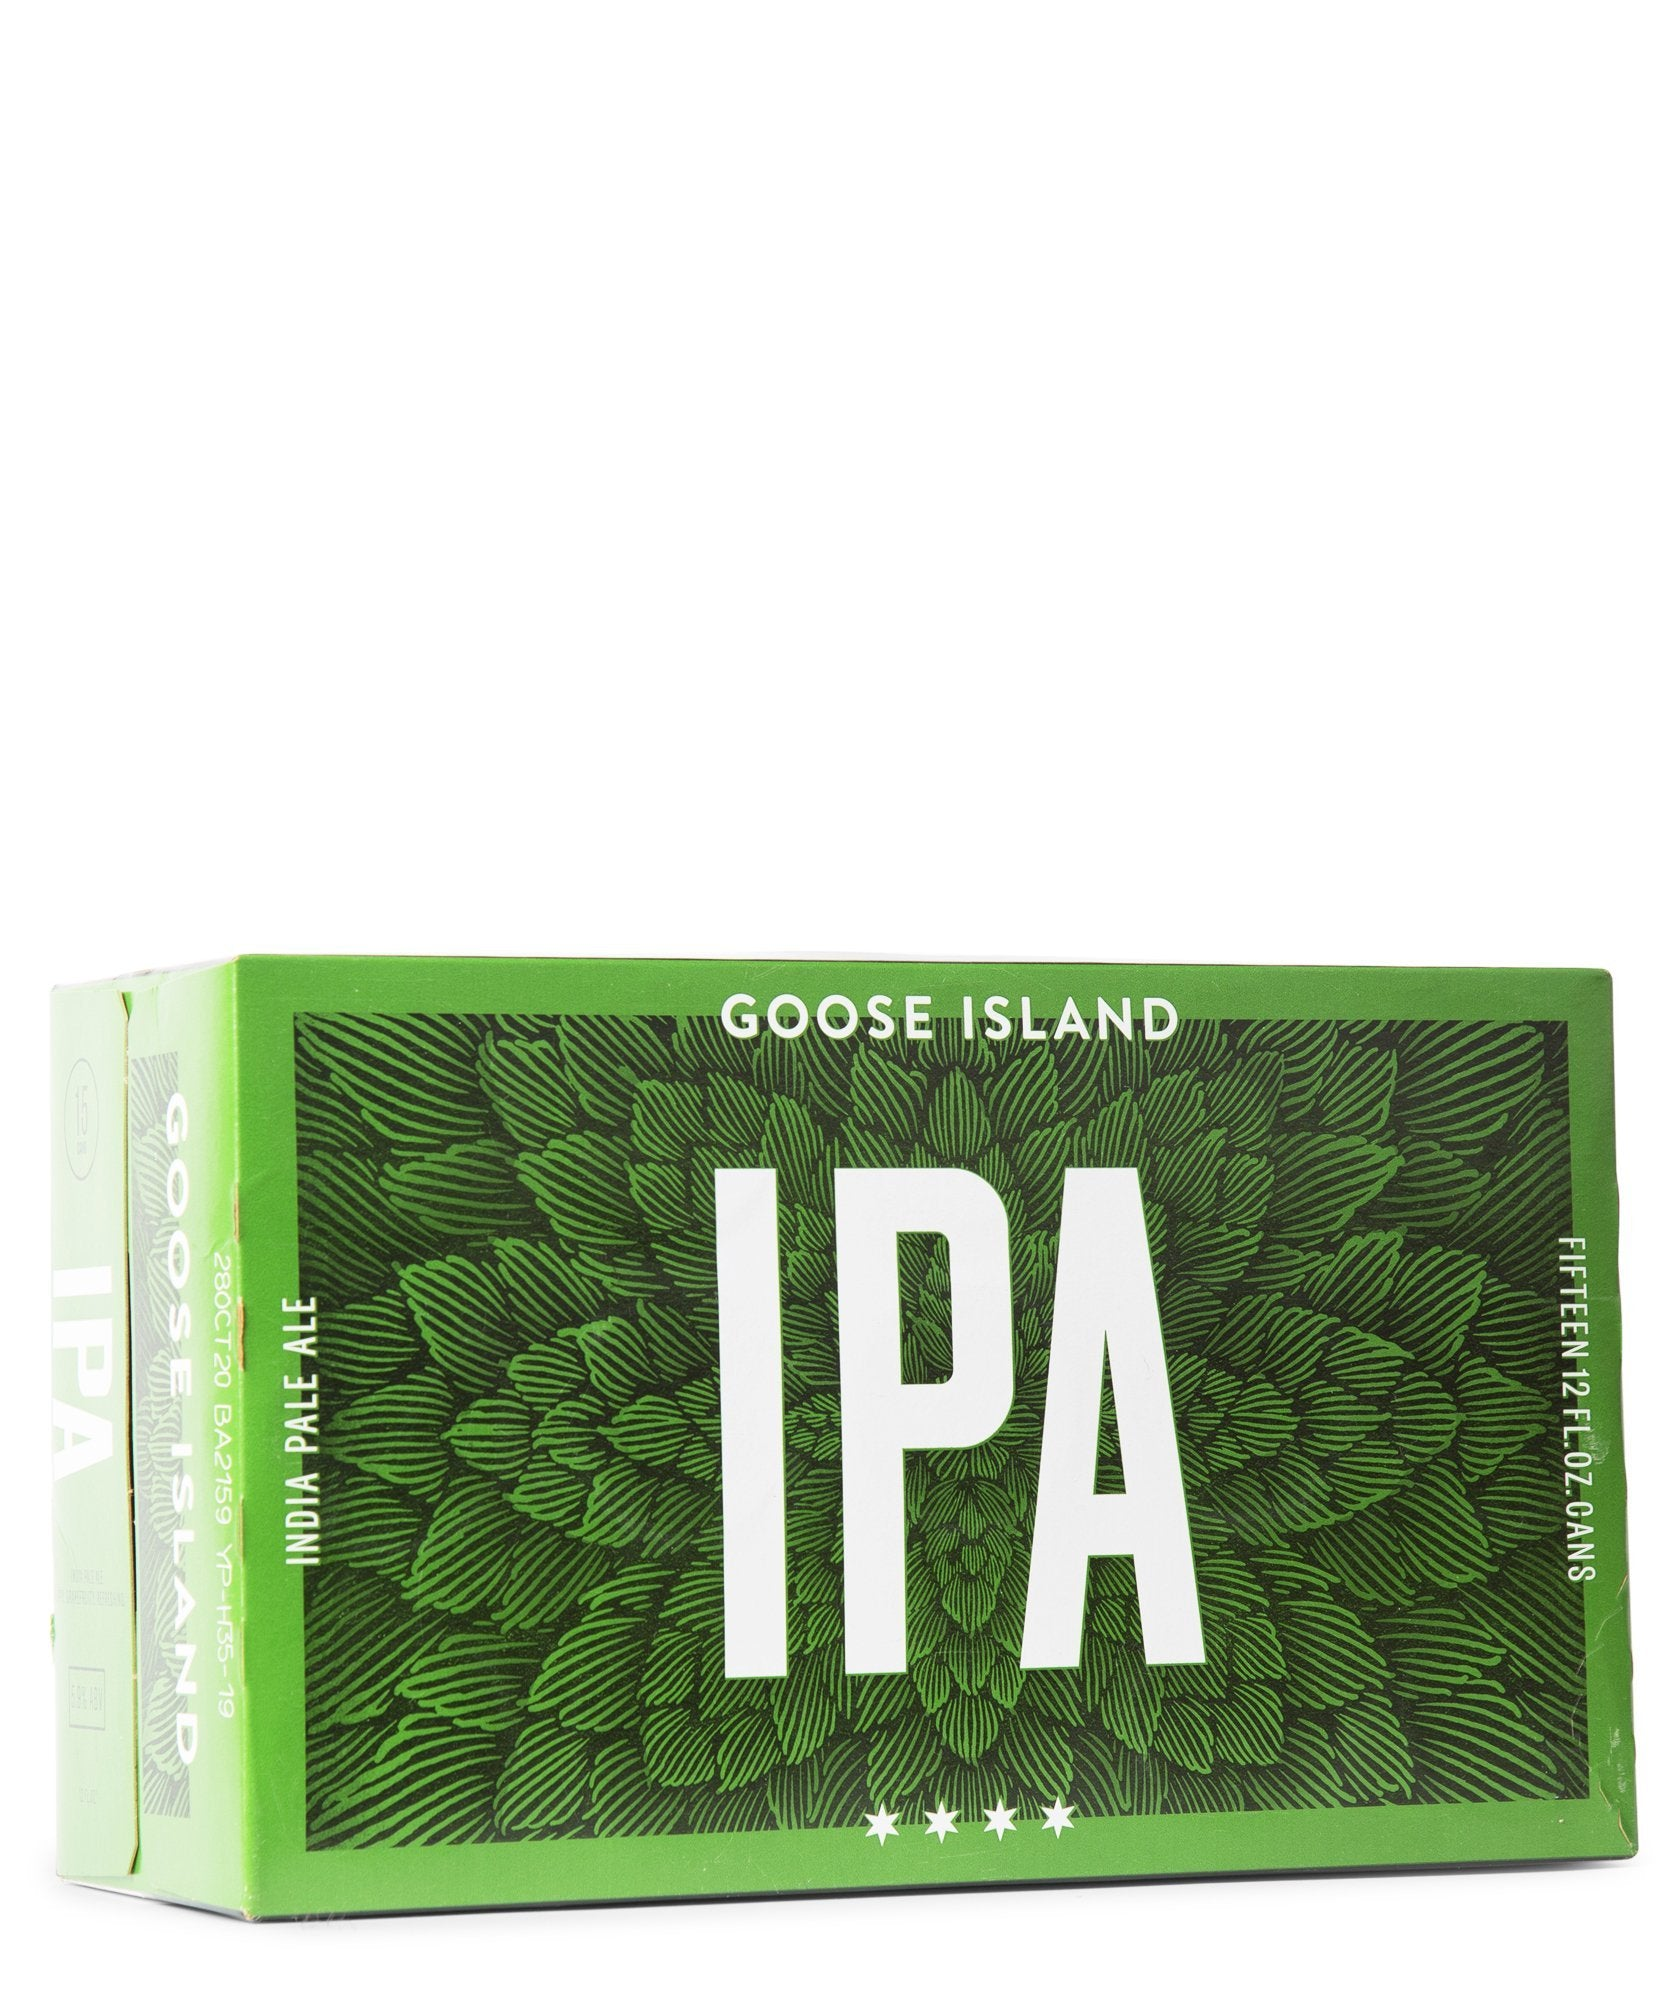 Goose Island IPA - Goose Island Brewing Company Delivered By TapRm